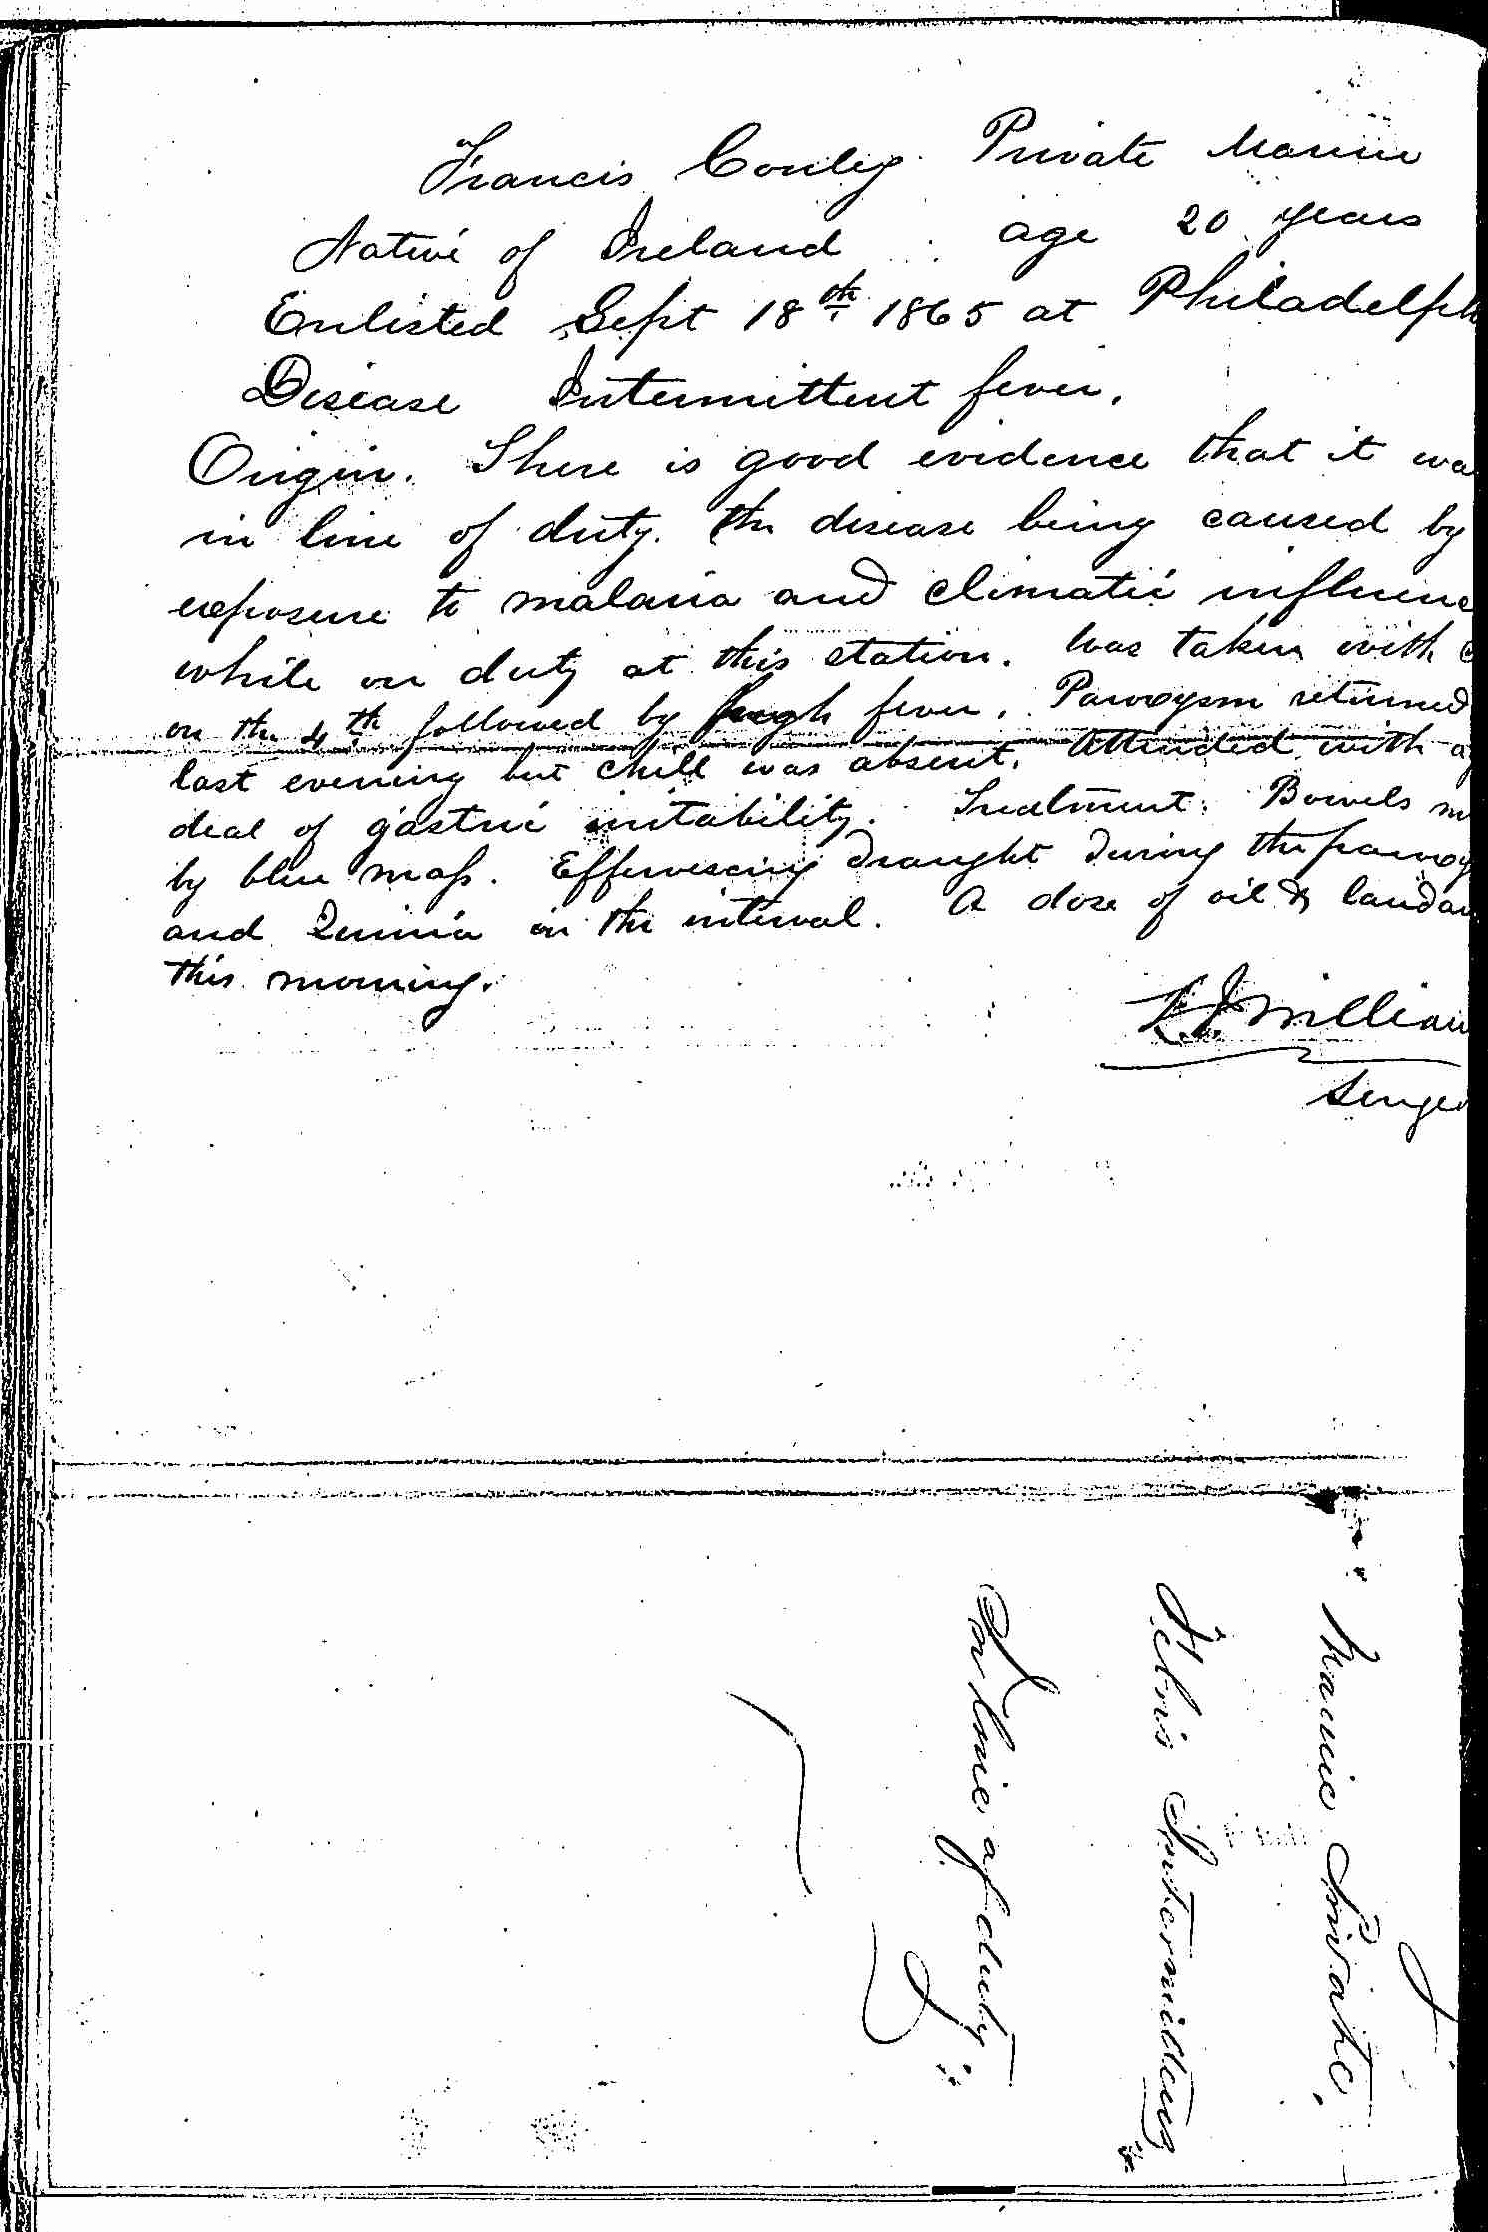 Entry for Francis Conley (page 2 of 2) in the log Hospital Tickets and Case Papers - Naval Hospital - Washington, D.C. - 1866-68